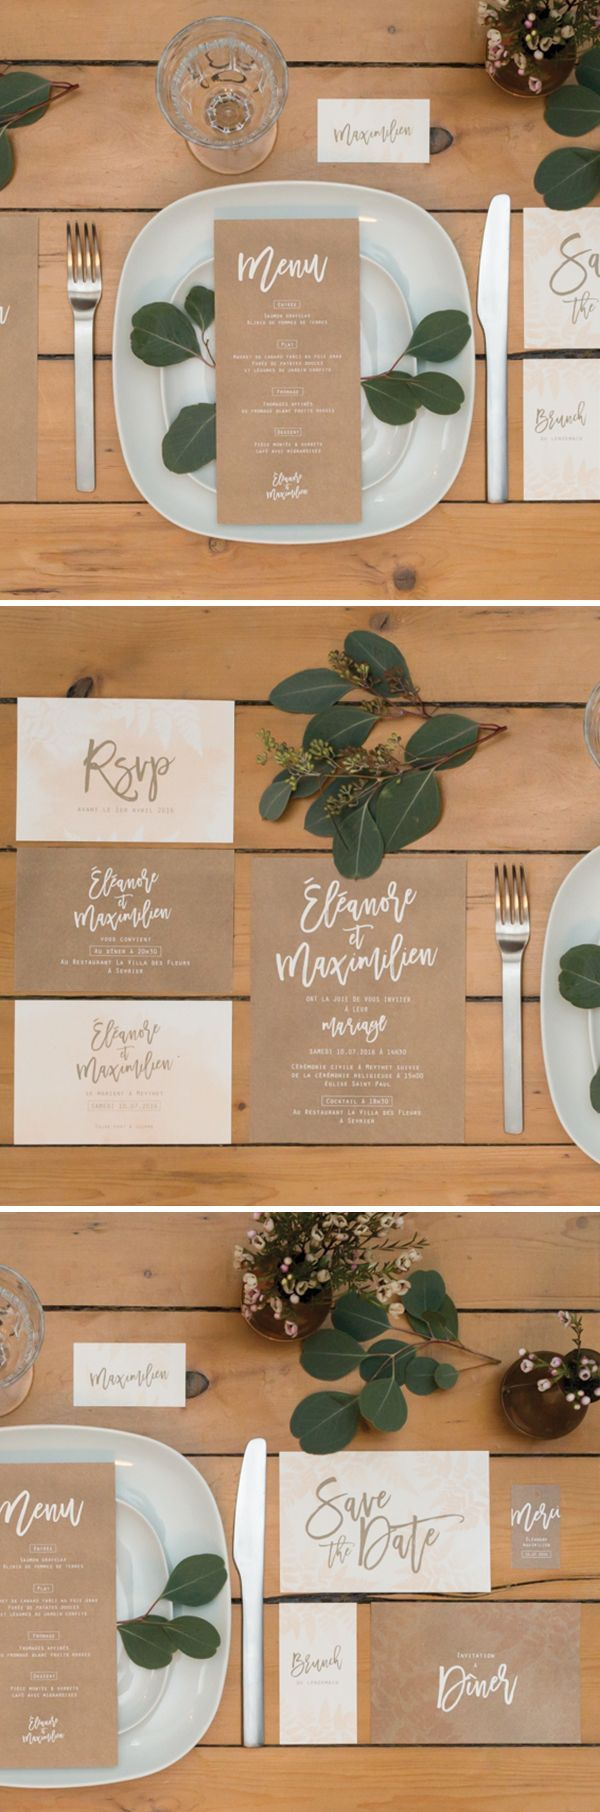 mariage organic | wedding invitation | stationery | papeterie mariage | mariage…